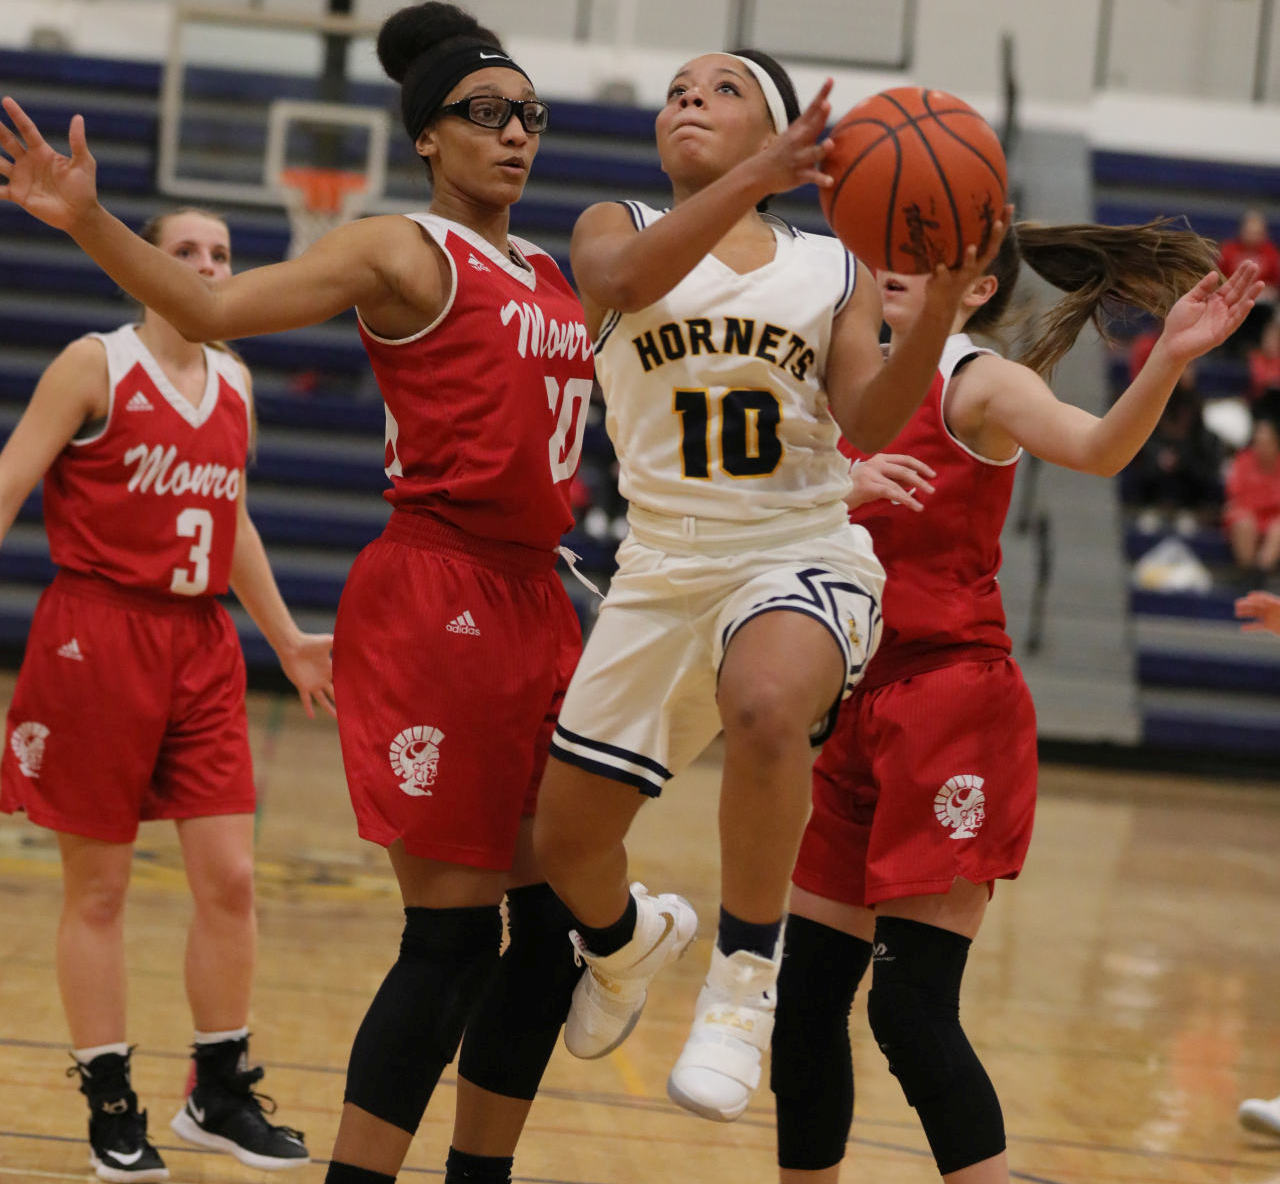 @TheSalinePost: Saline Girls Lose To Huron